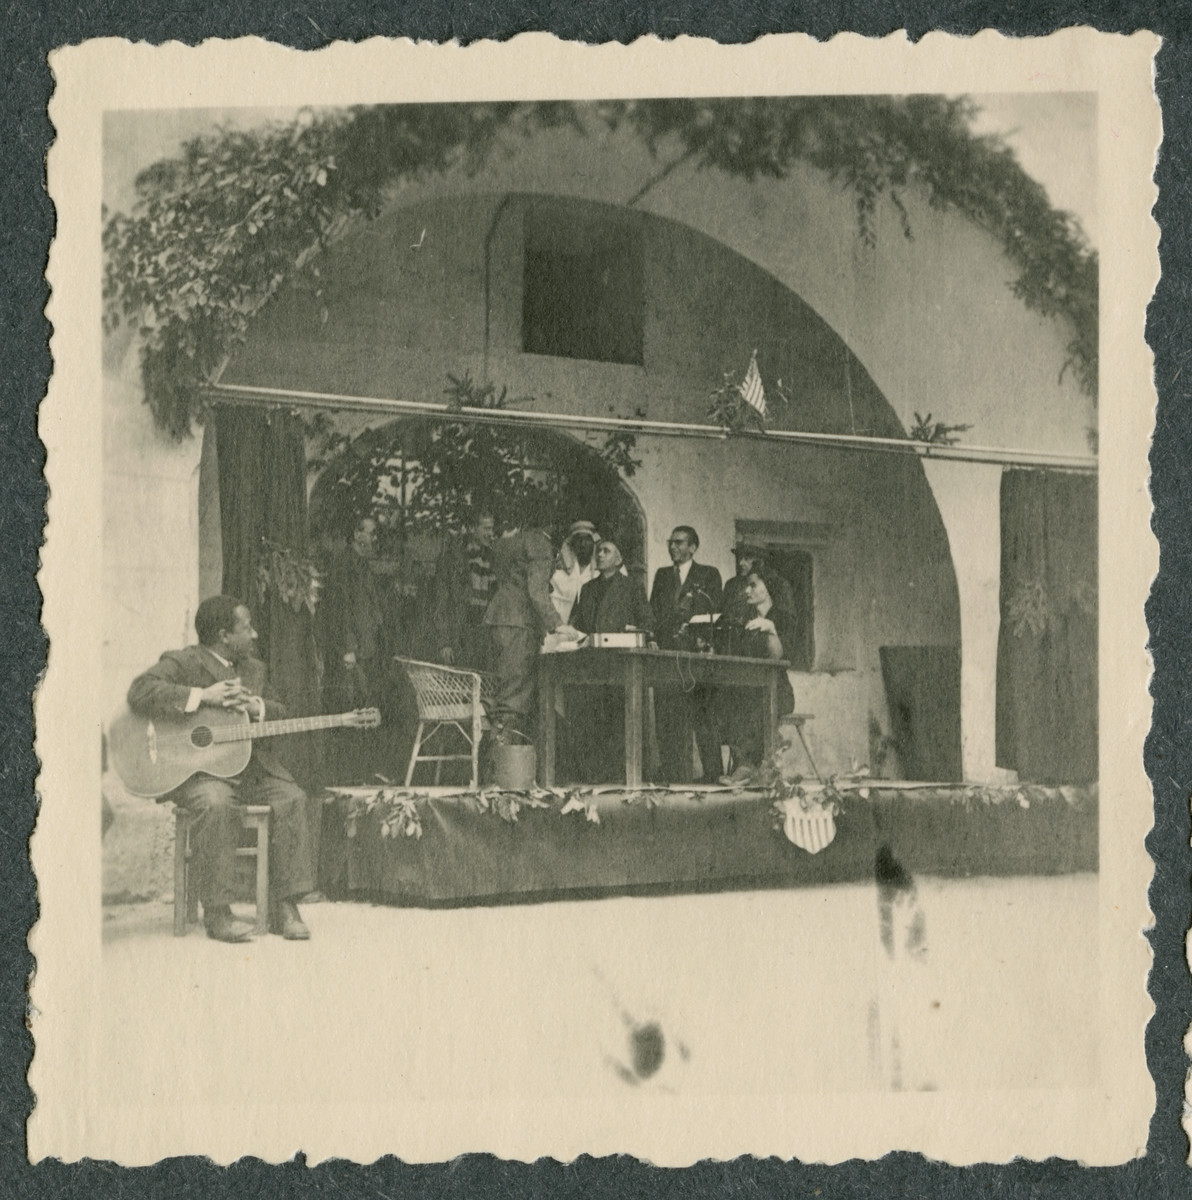 Internees gather by the entrance to Tittmoning castle underneath the American flag  for an official program.  Among those pictured is guitarist Johnny Mitchel, on the left.